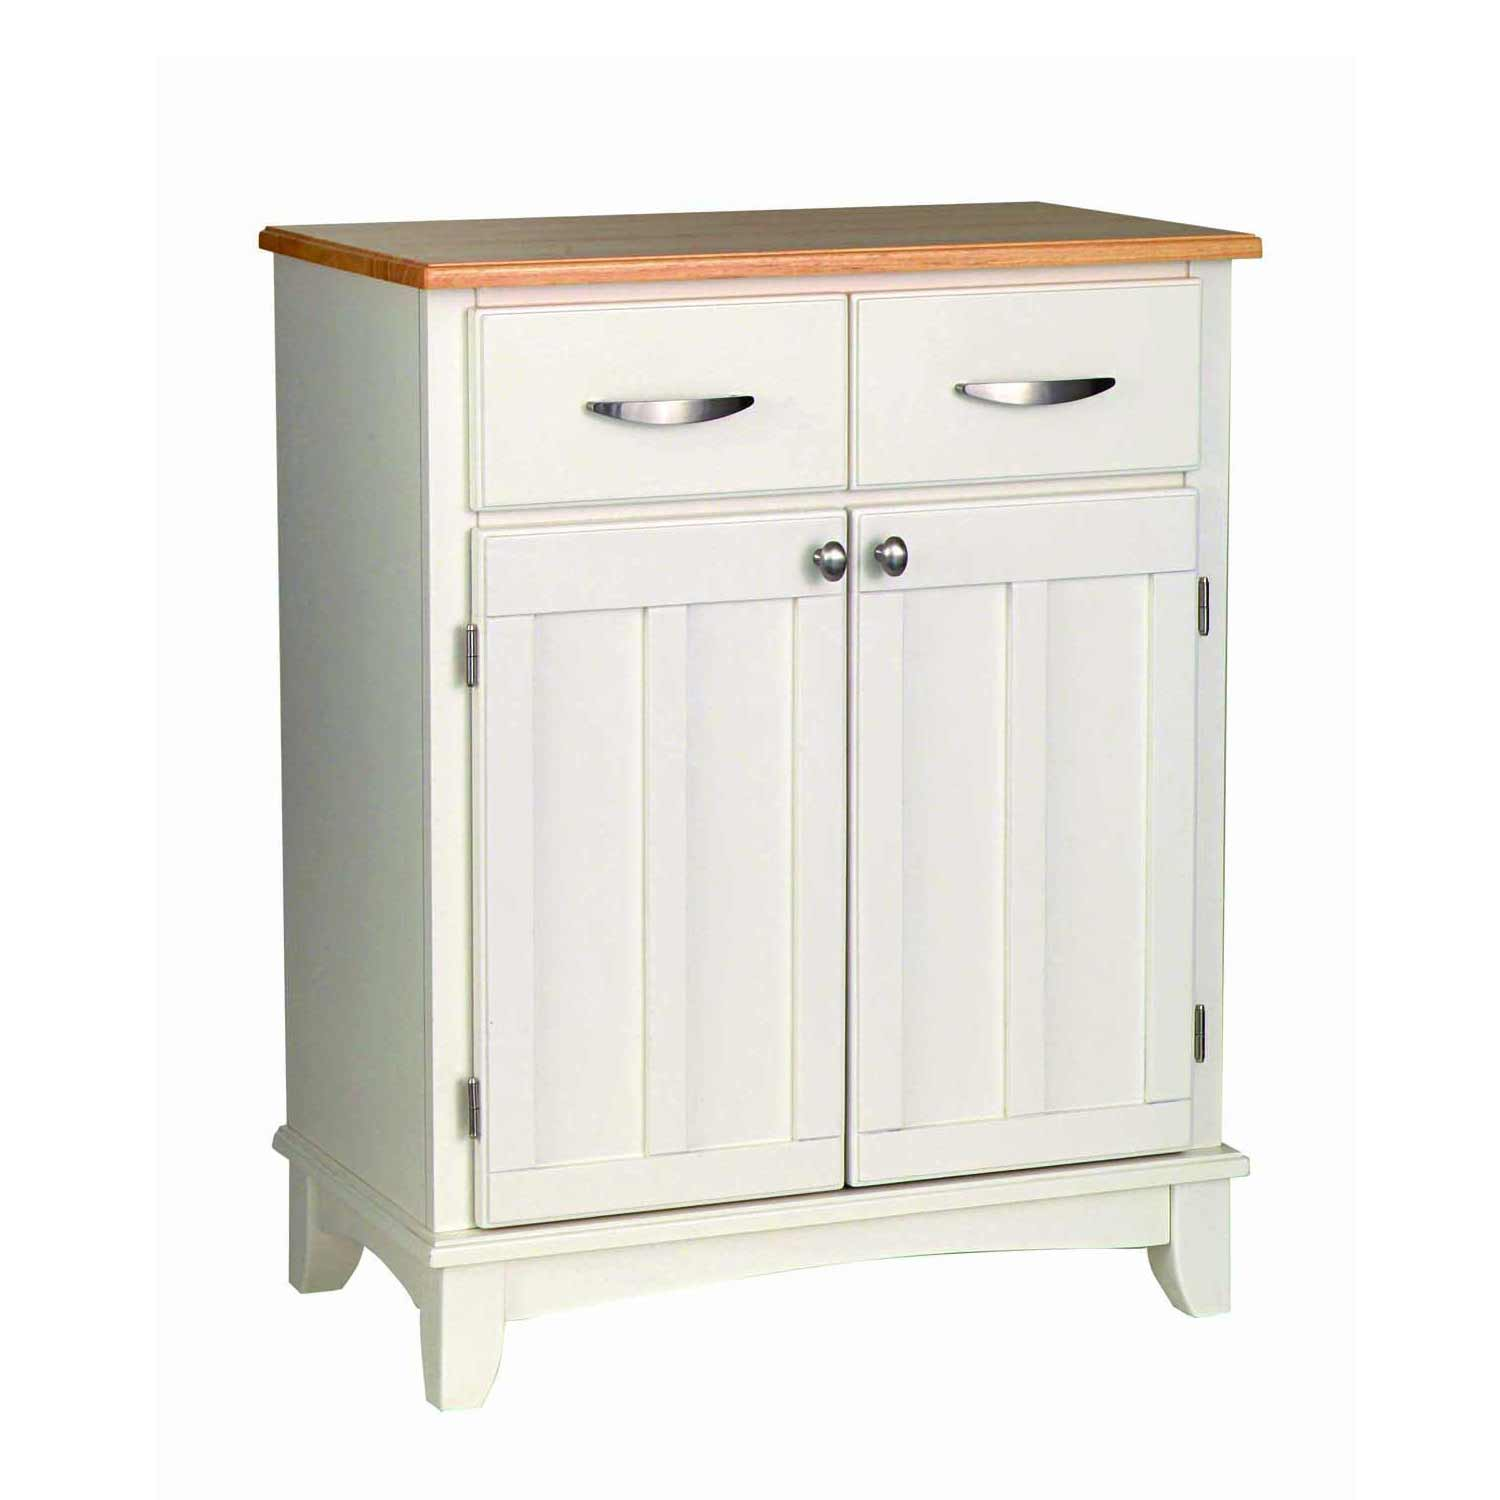 Marvelous photograph of Styles Small Buffet Server With Wood Top Feel The Home with #794615 color and 1500x1500 pixels